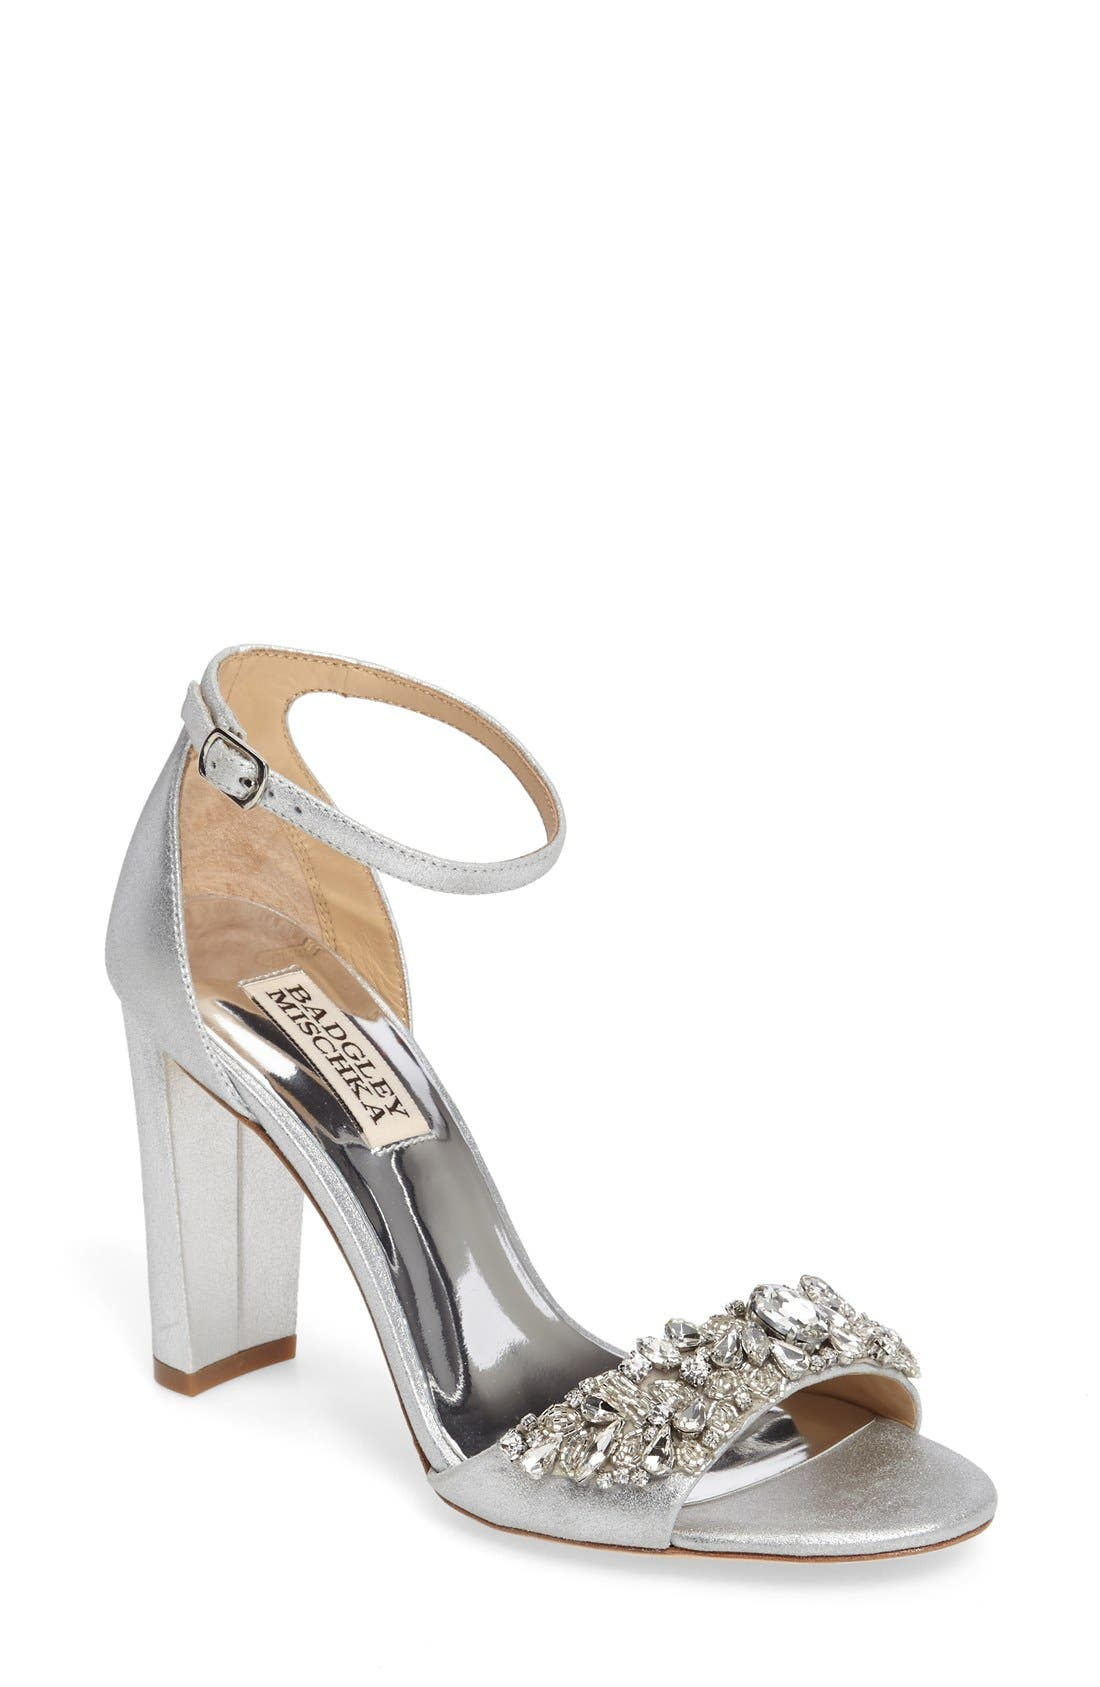 Alternate Image 1 Selected - Badgley Mischka Barby Ankle Strap Sandal (Women)